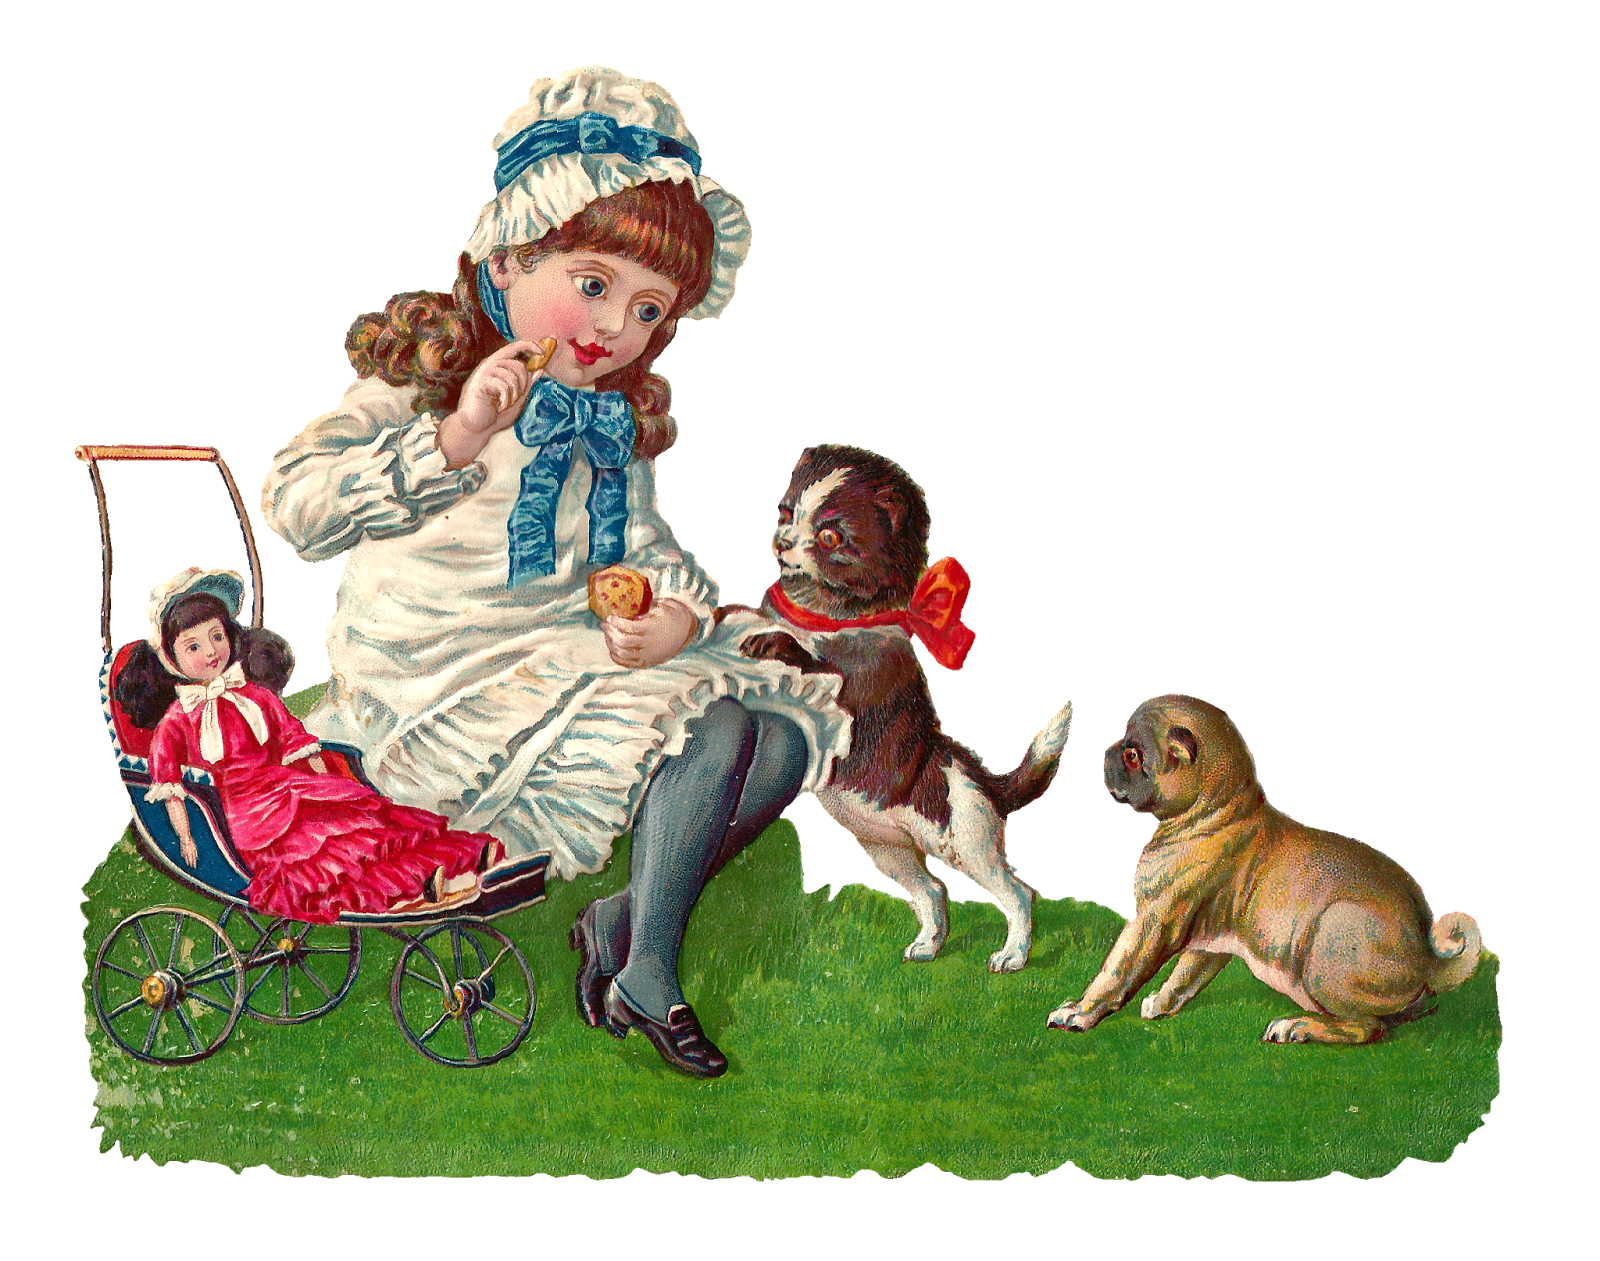 Play with dog clipart clip art transparent stock Antique Images: Girl Playing with Dogs and Doll Digital Clip Art clip art transparent stock